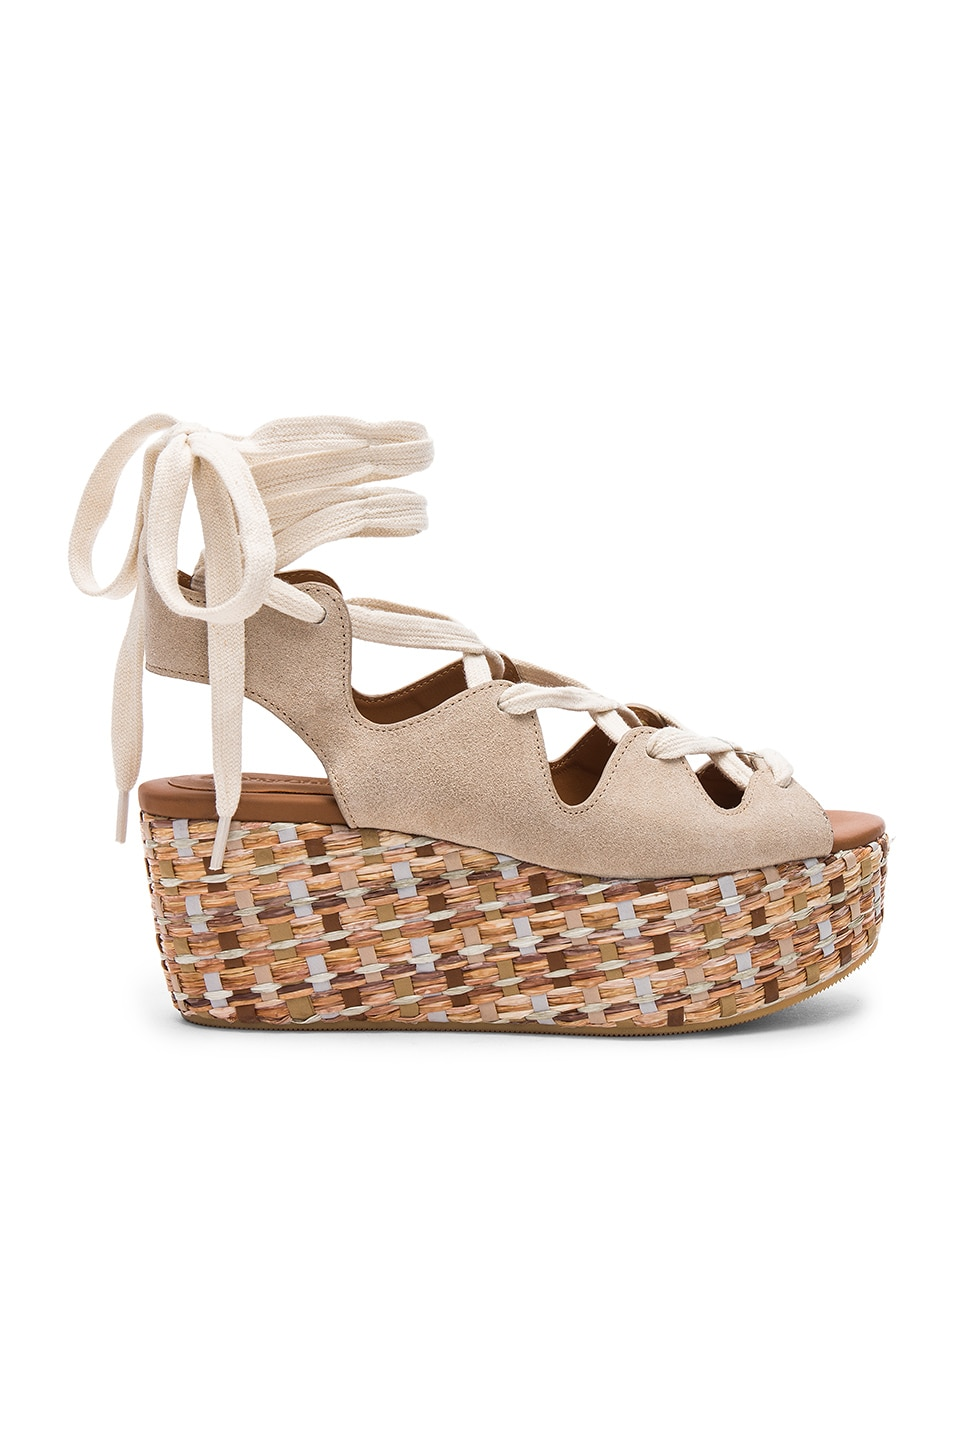 See By Chloe Lace Up Platform Sandal in Beige